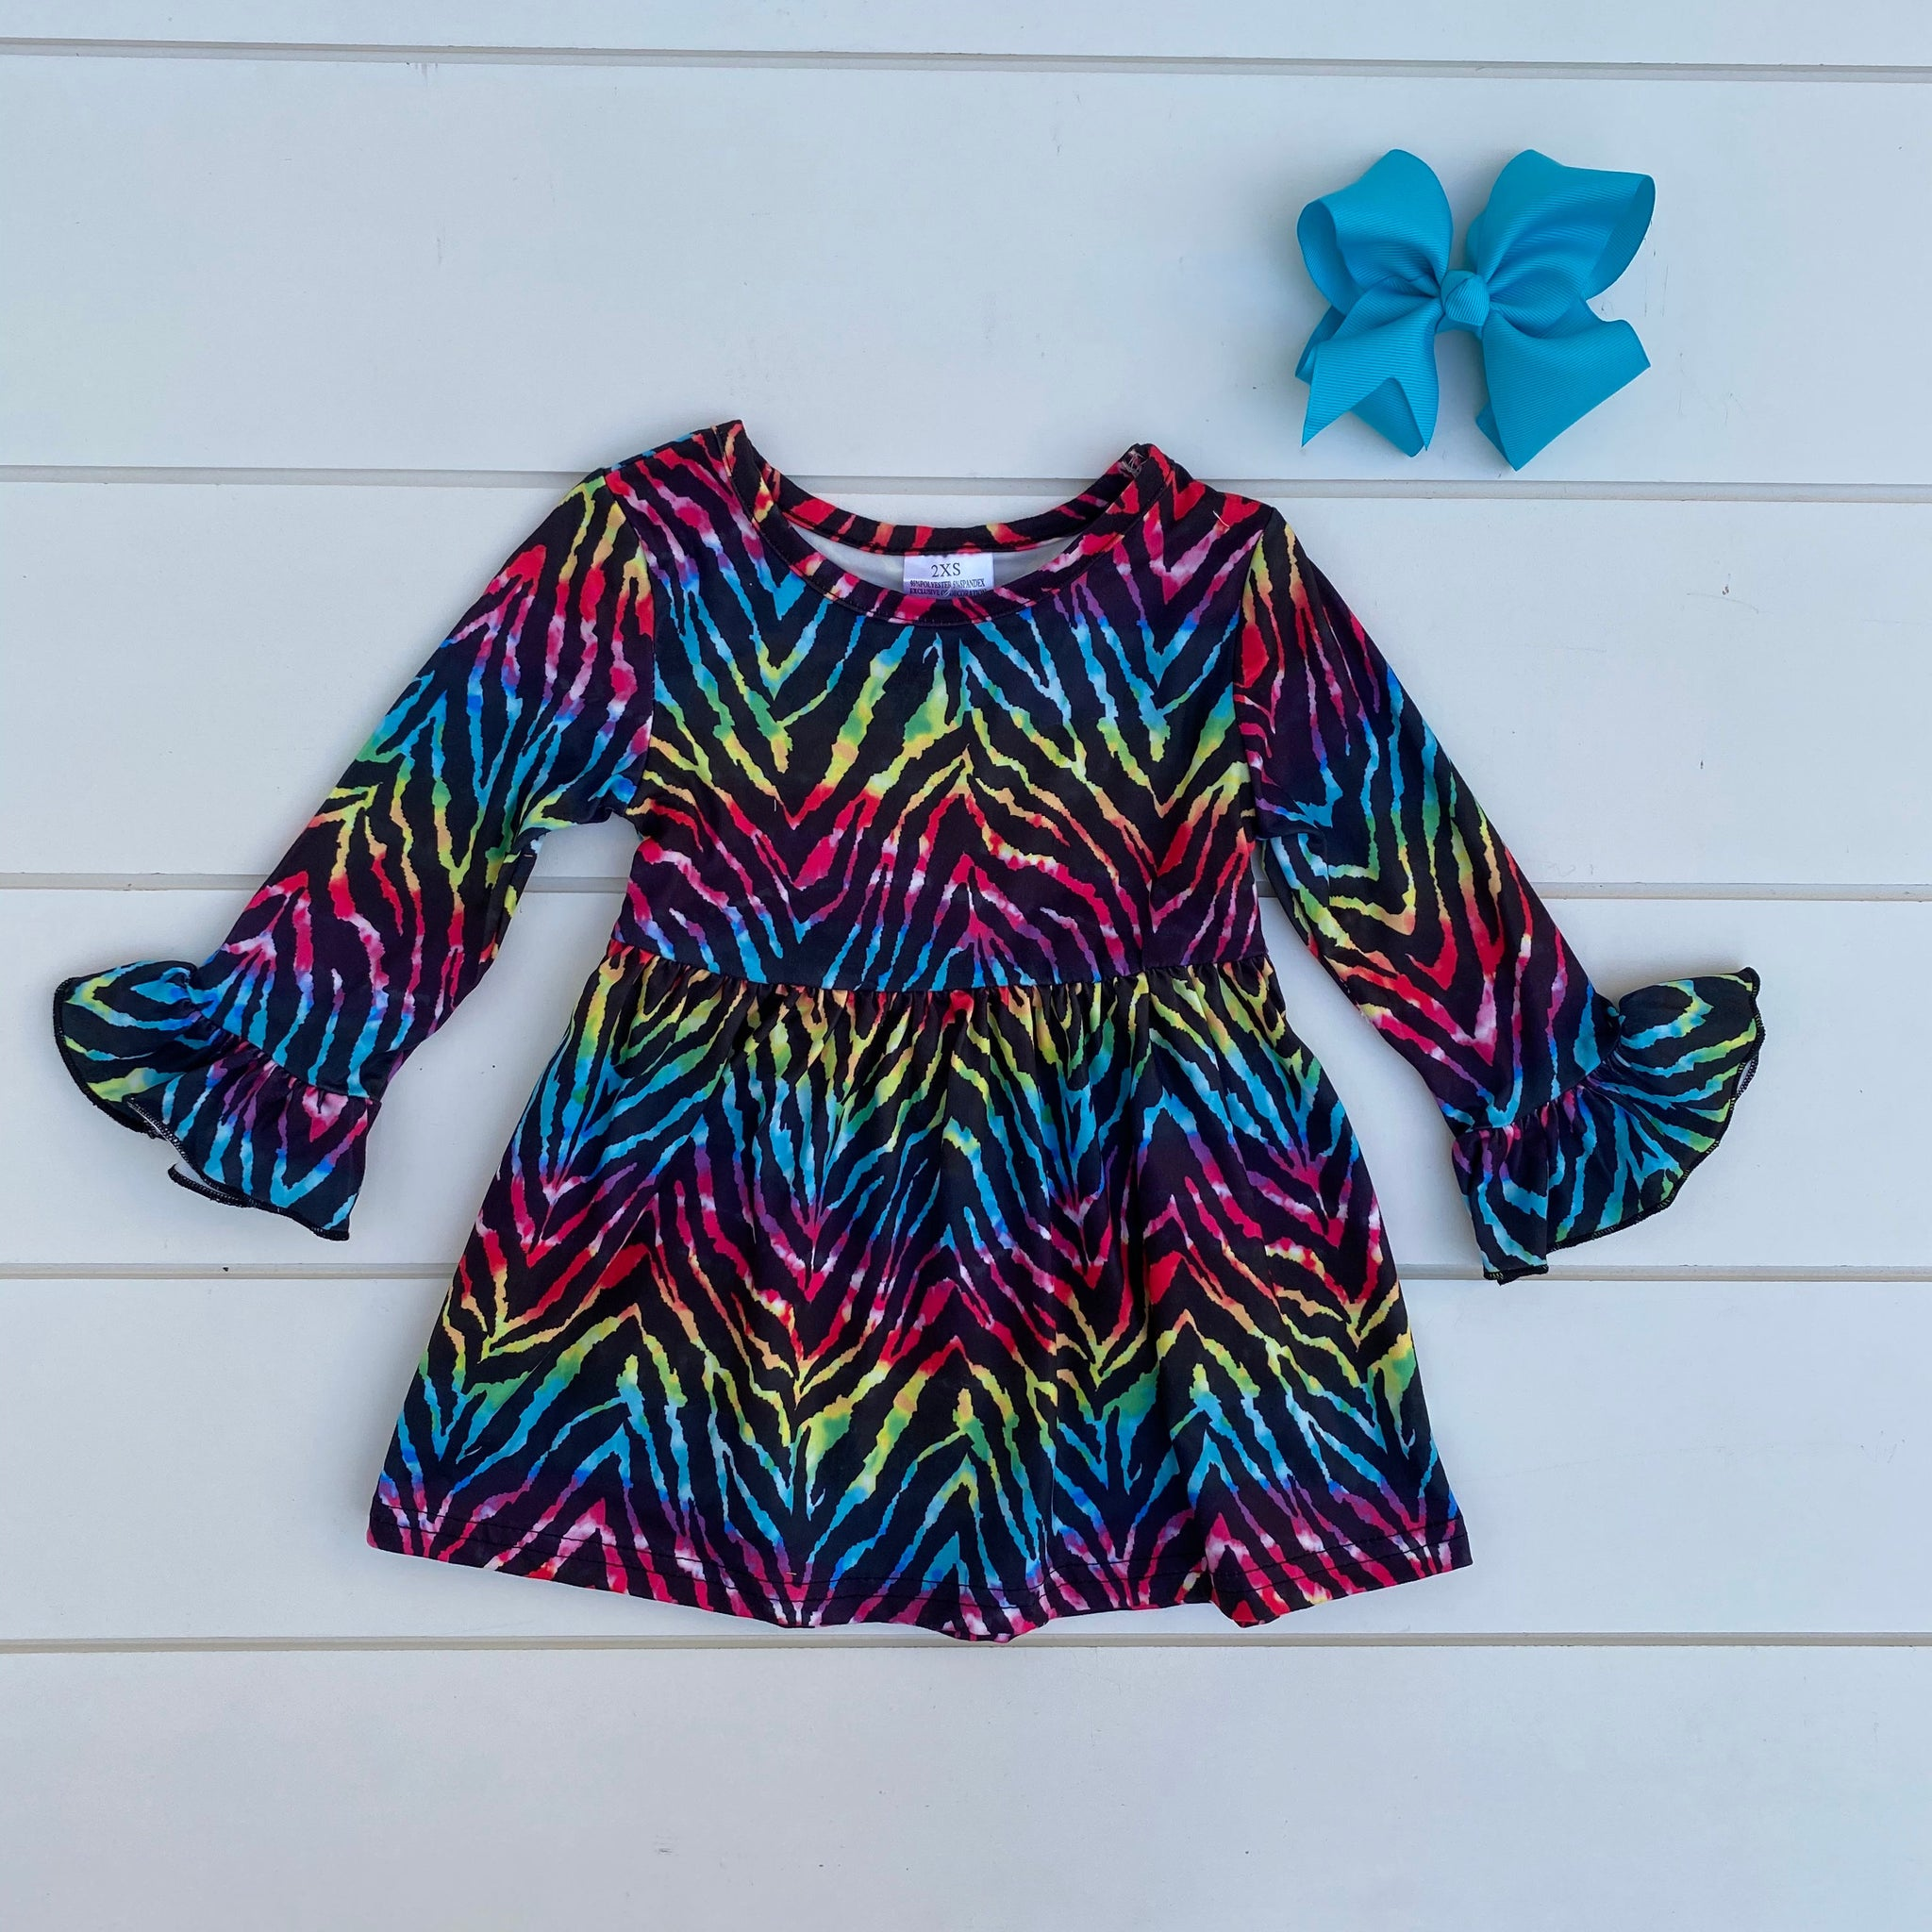 WILD RAINBOW COLORED BELL SLEEVE DRESS